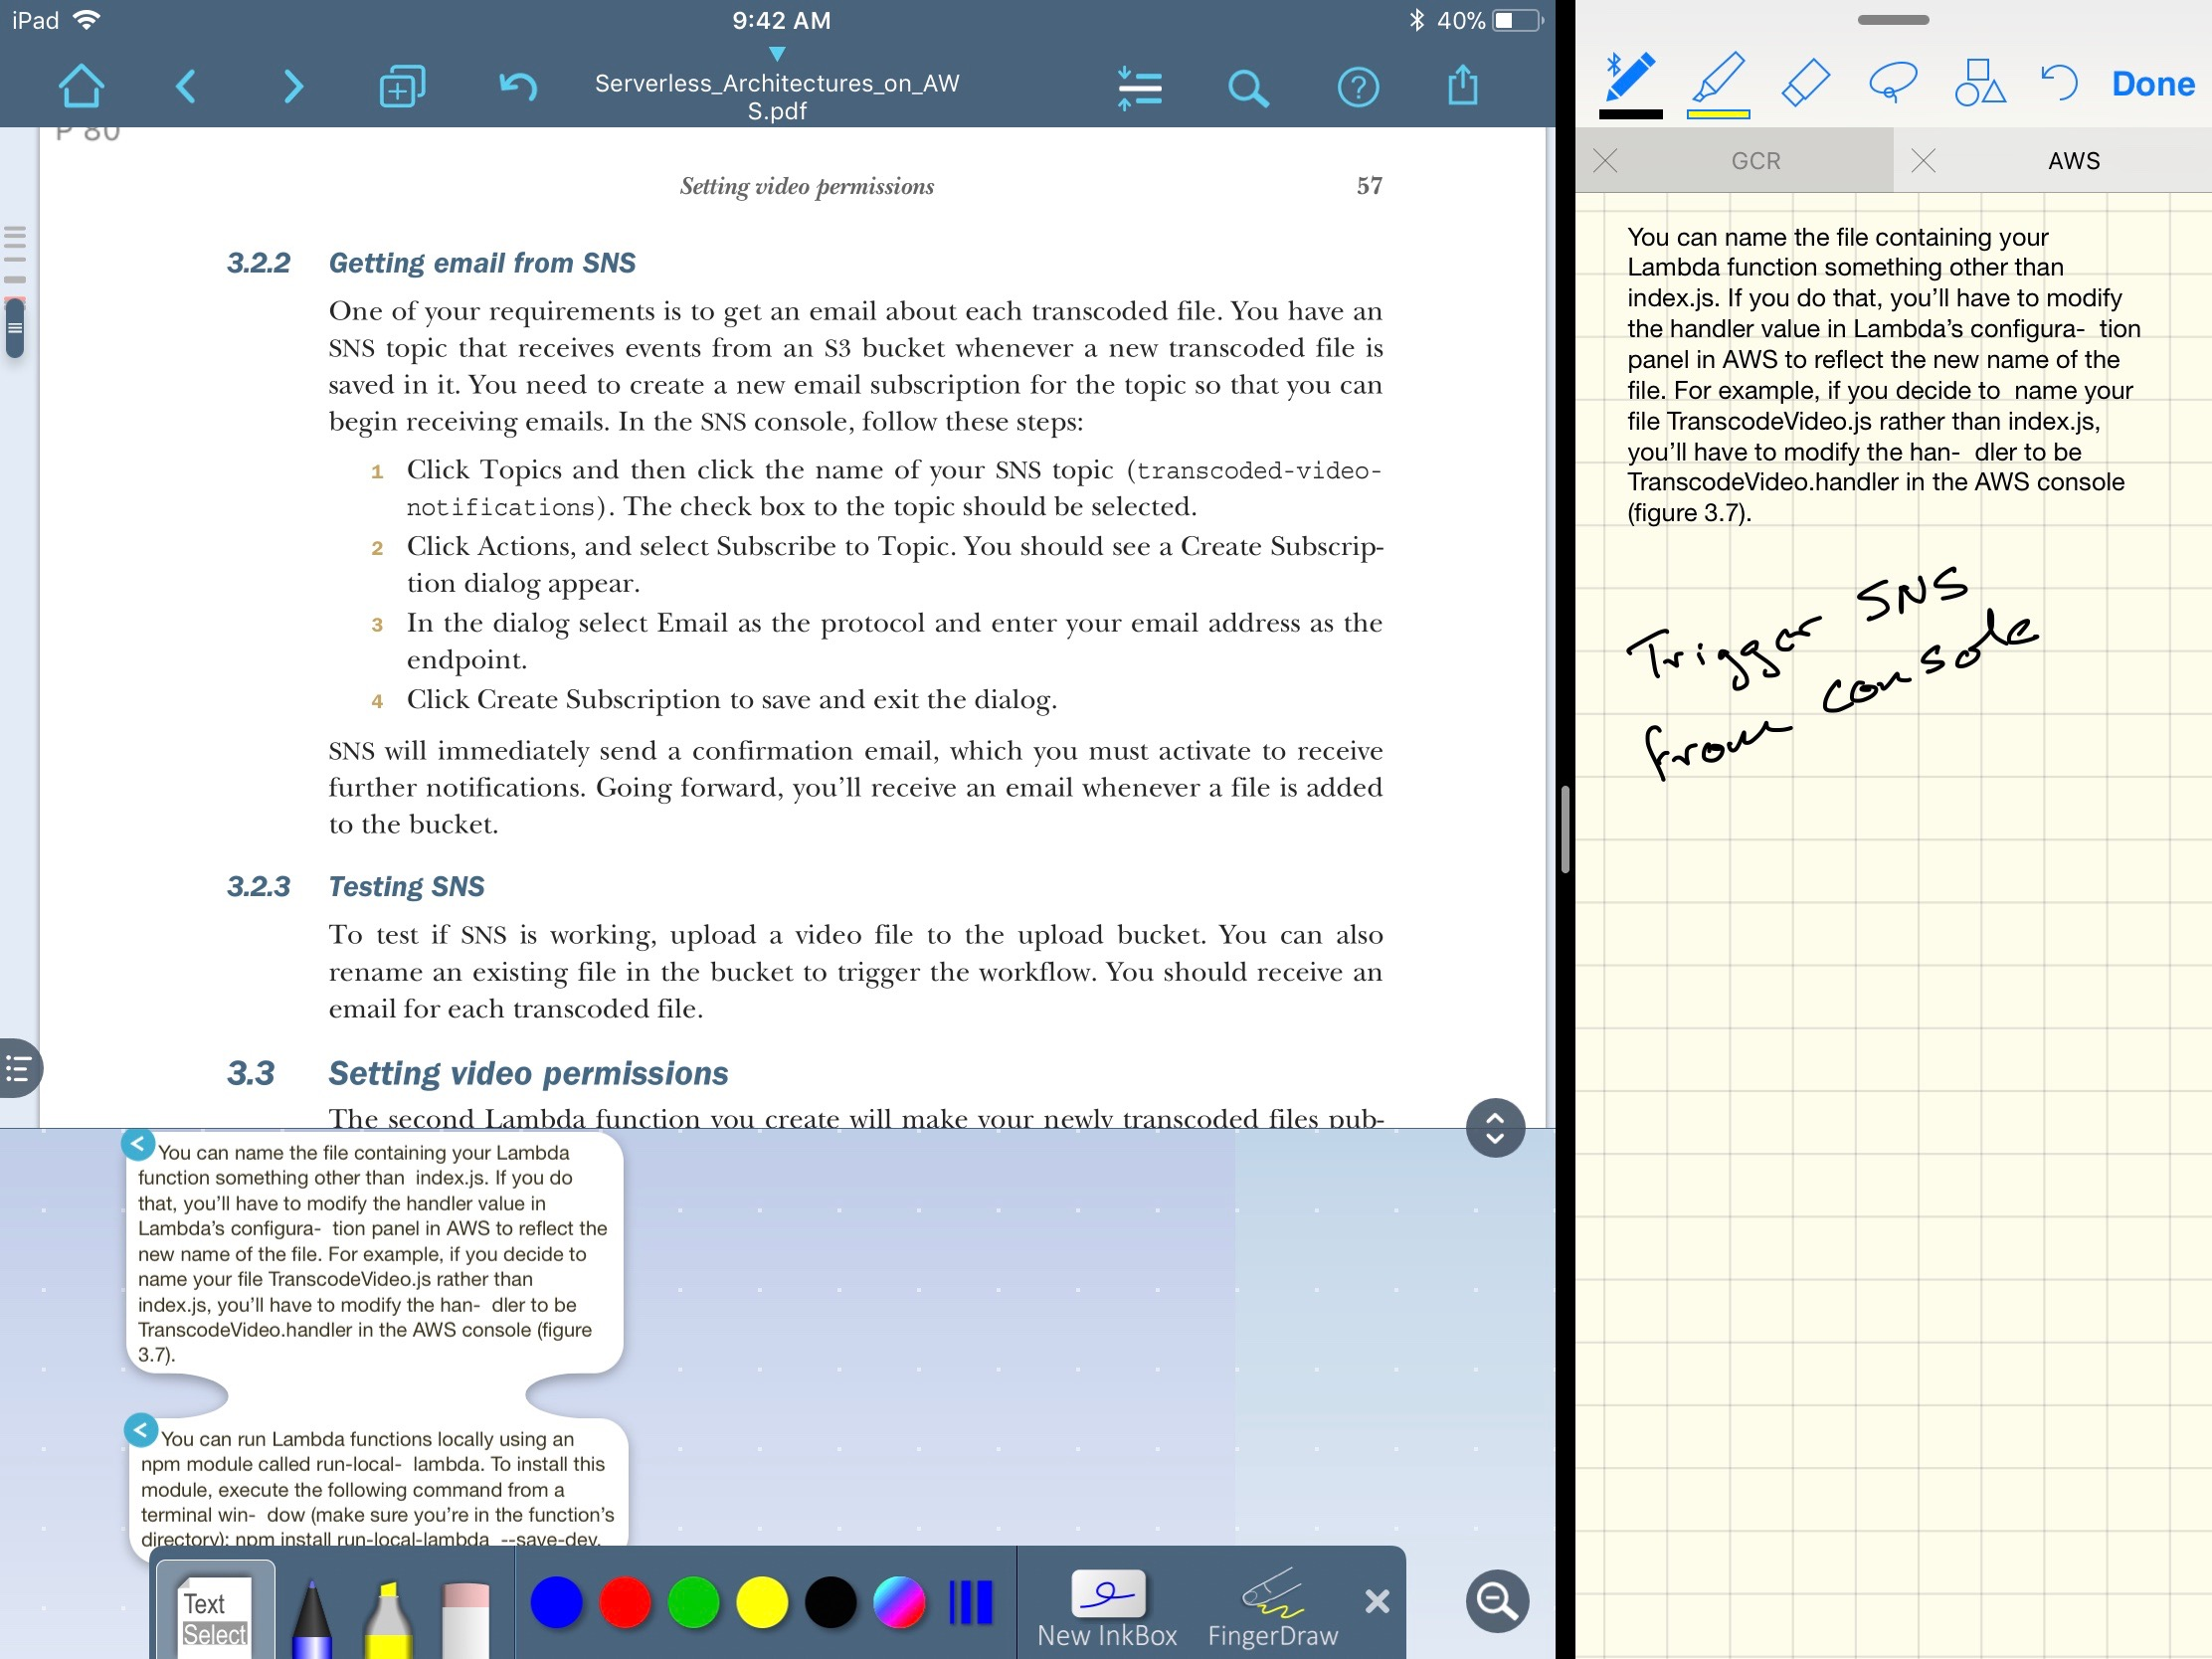 Taking Notes on an iPad with LiquidText